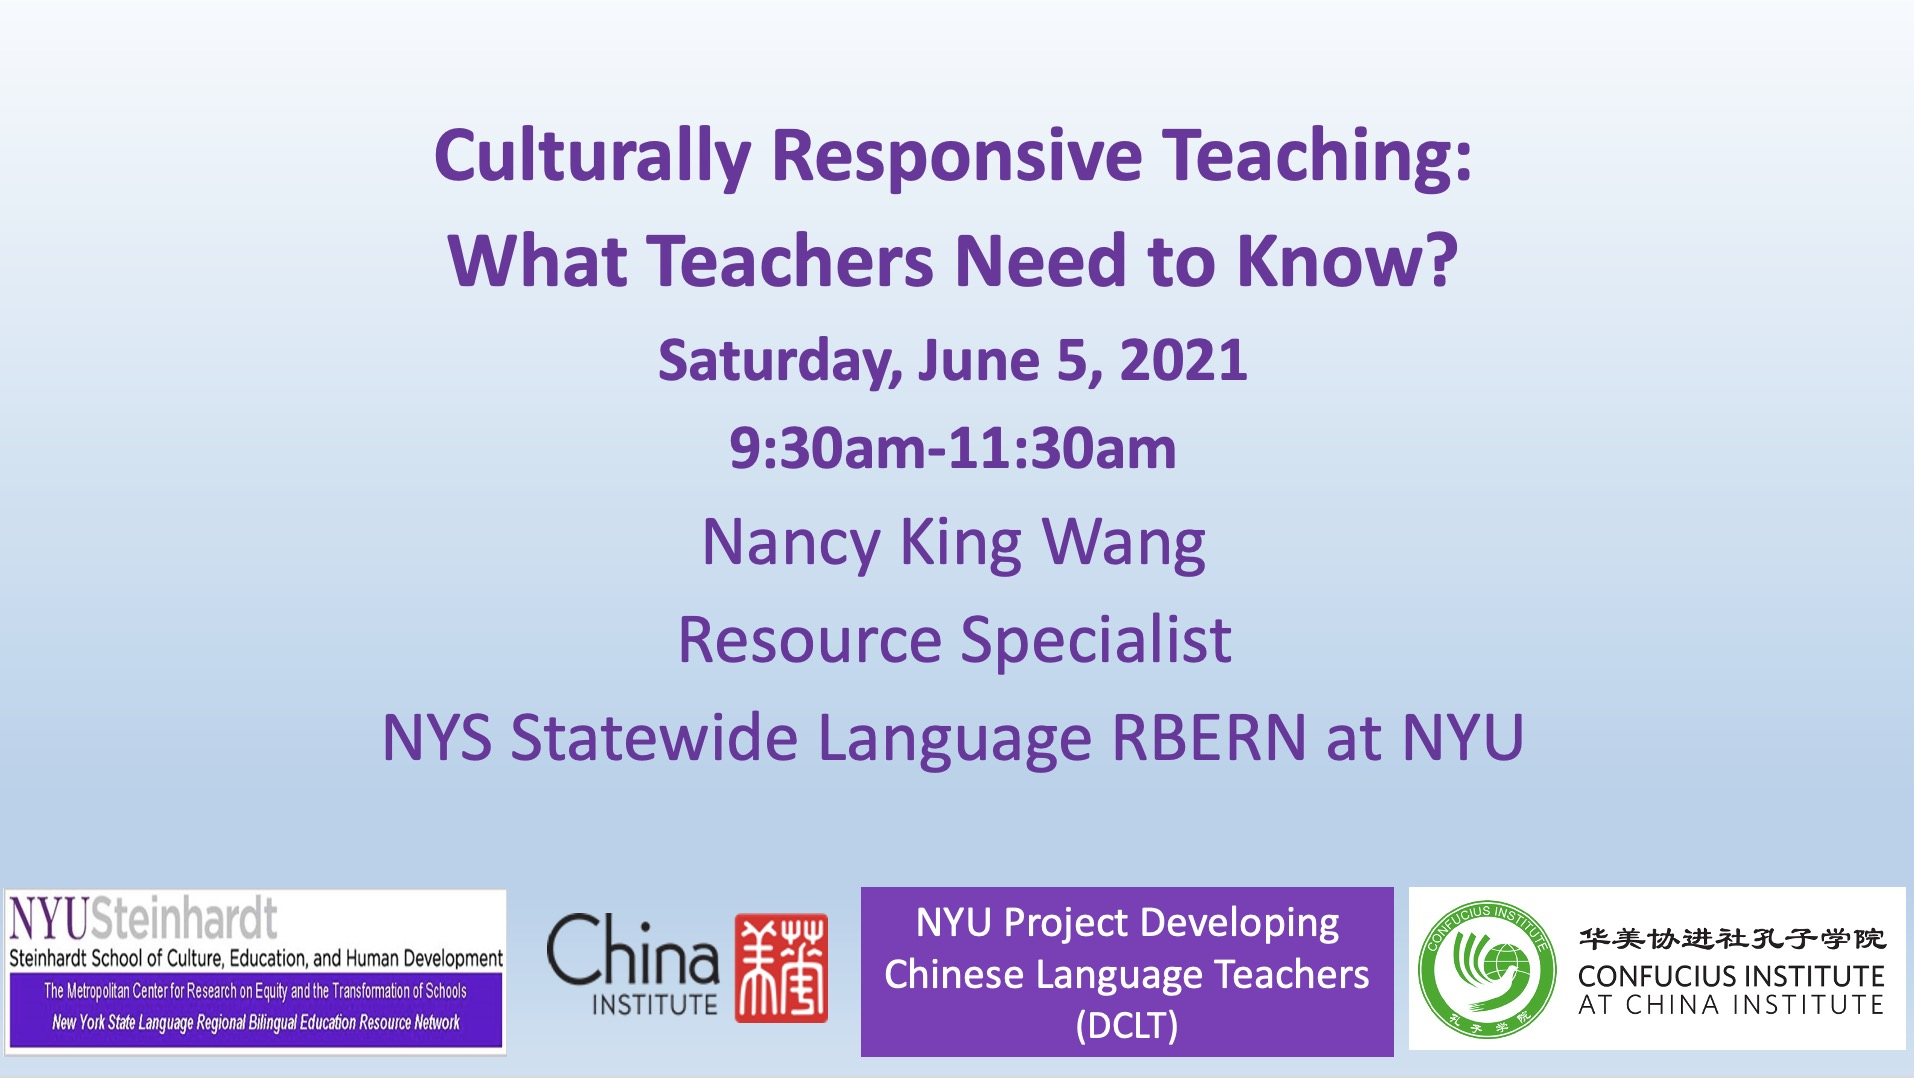 Culturally Responsive Teaching: What Teachers Need to Know? 6.5.21